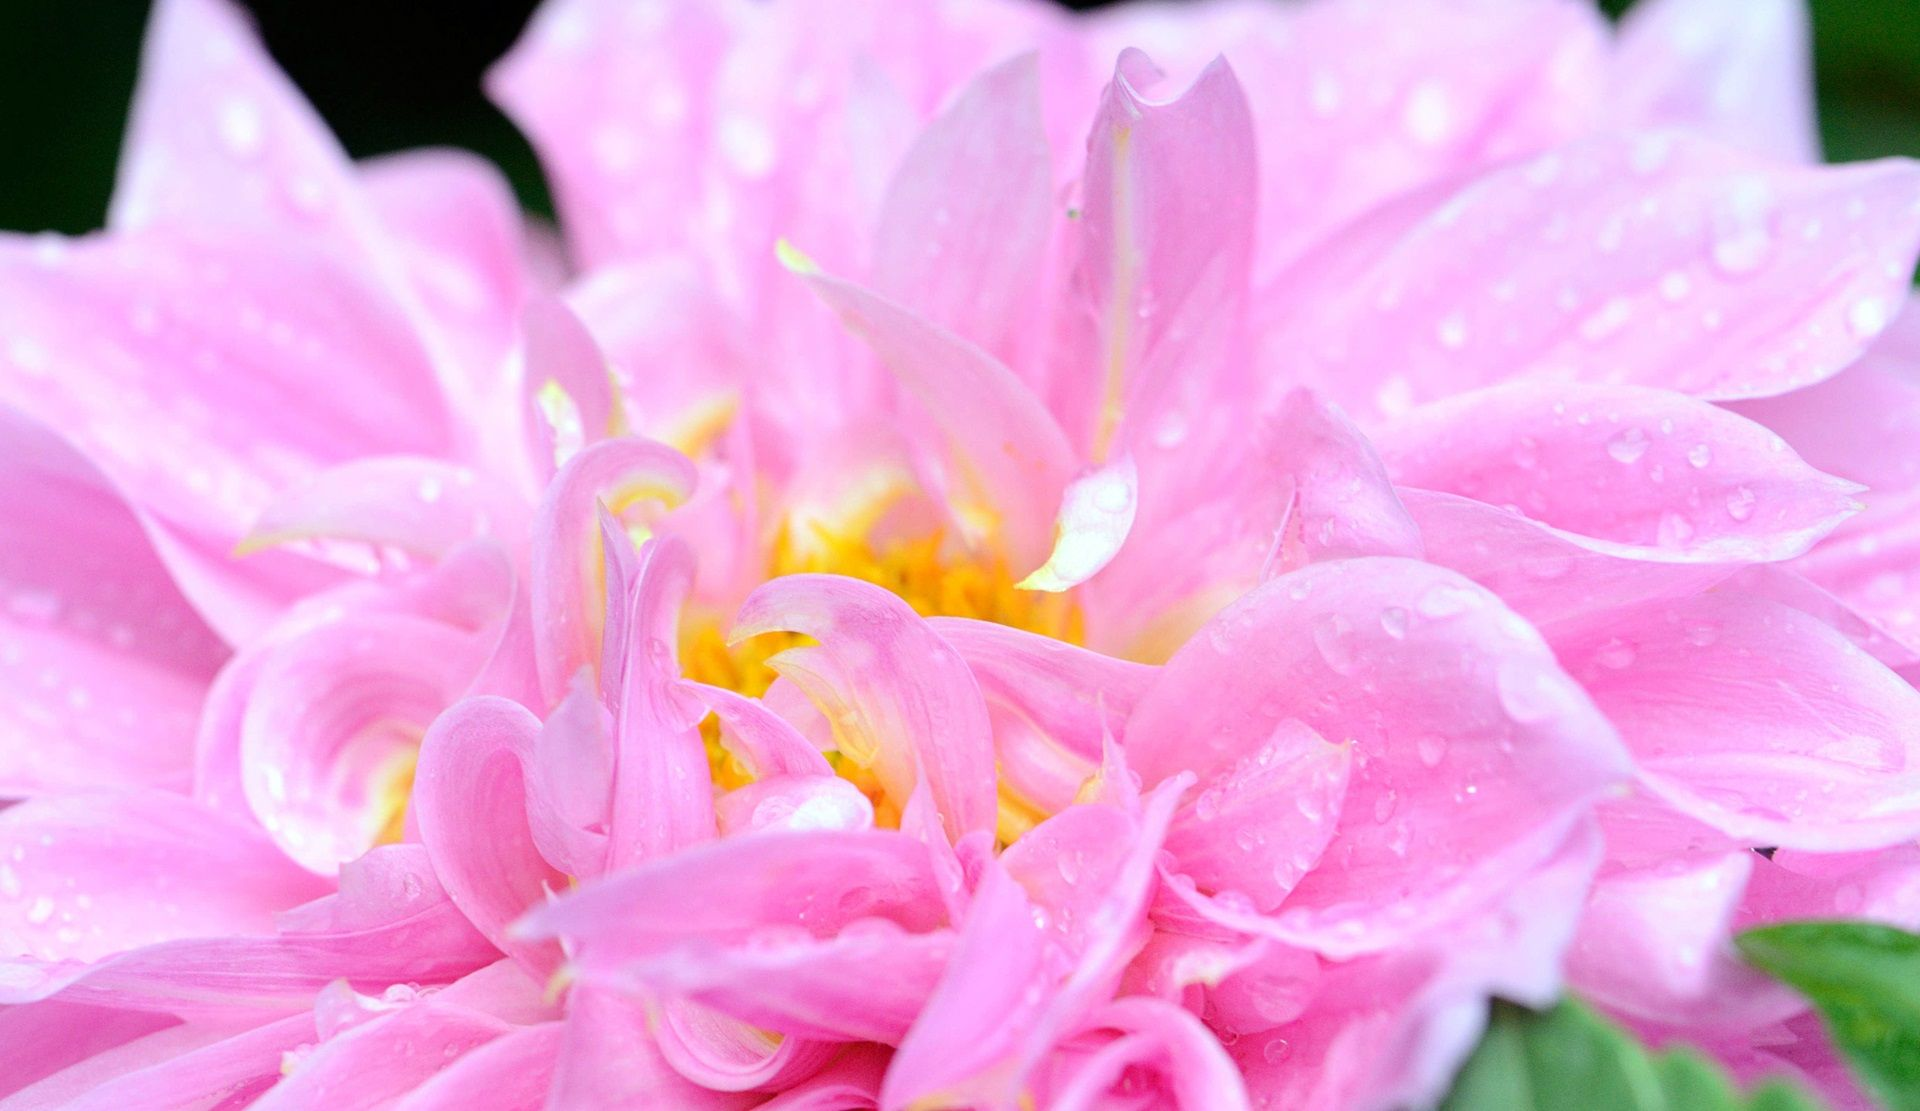 15 Amazing Beautiful Flowers Photos For Free Download Get Free